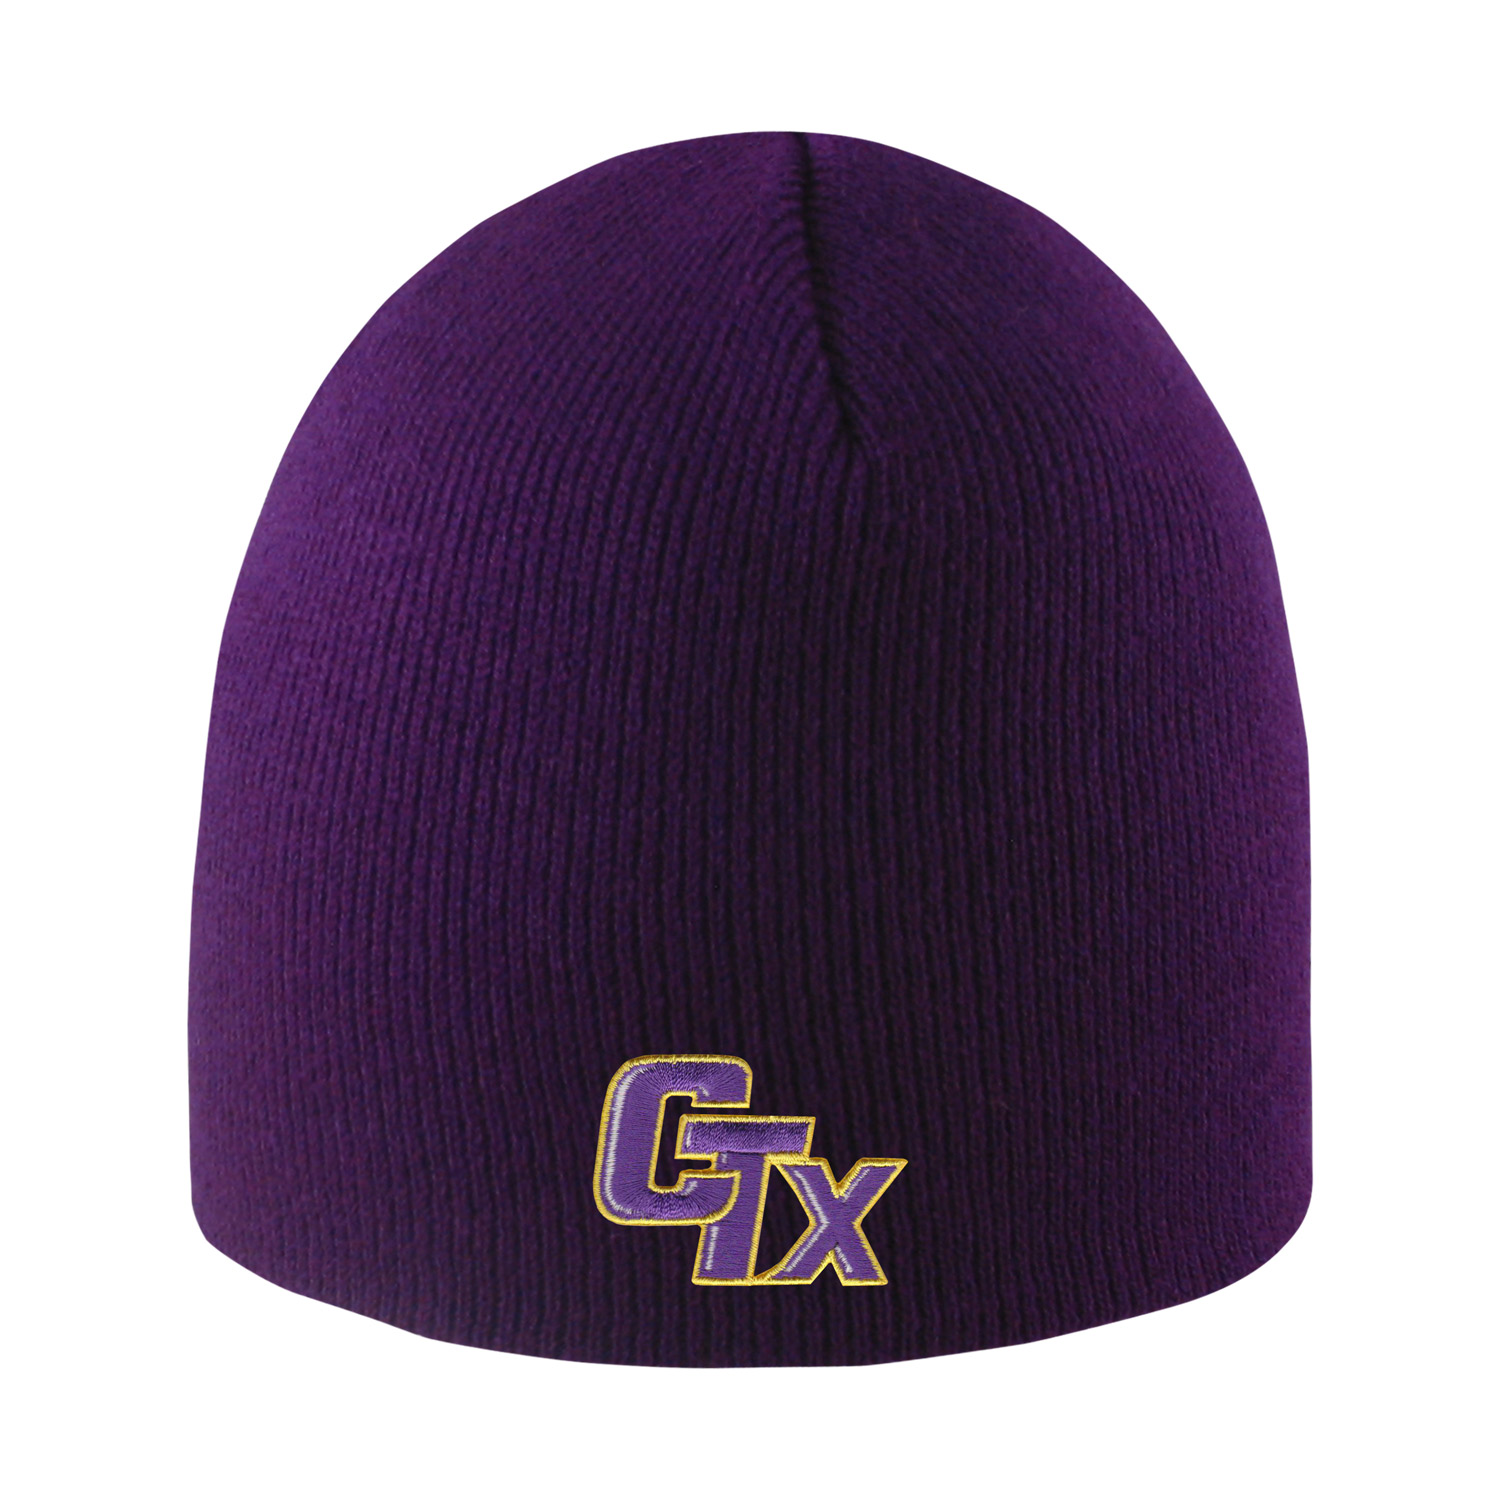 Everest Knit Beanie - Purple